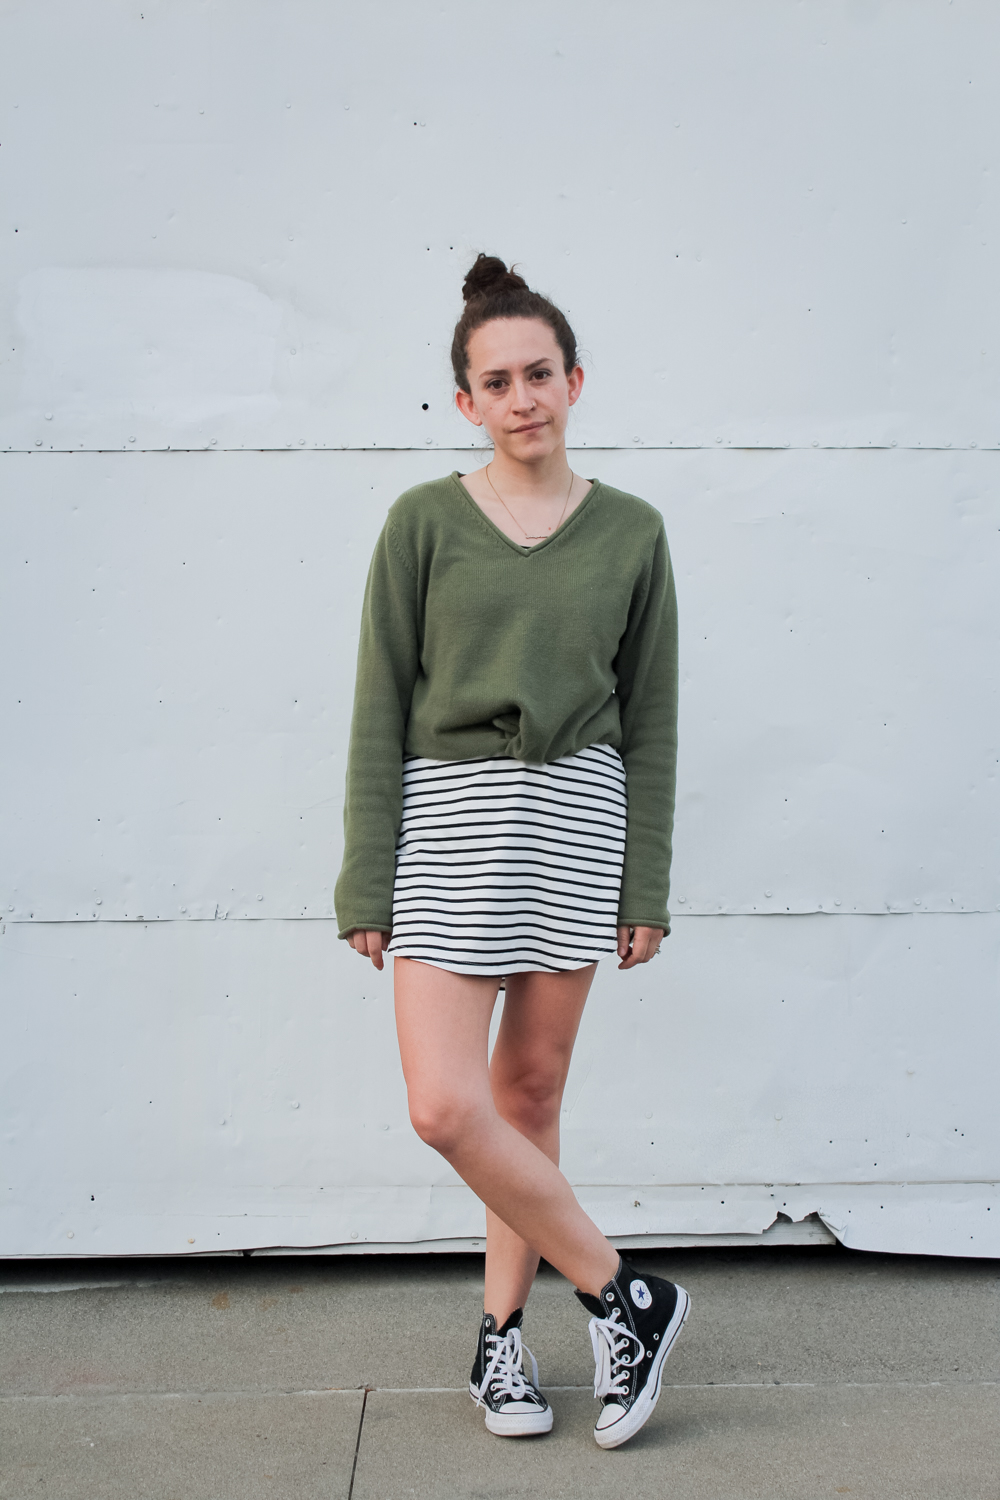 Day 4 of the Spring 10x10/Unfancy Remix challenge! I wore a light green v neck sweater over a stripe t shirt dress and styled it with a top knot and my high top converse sneakers